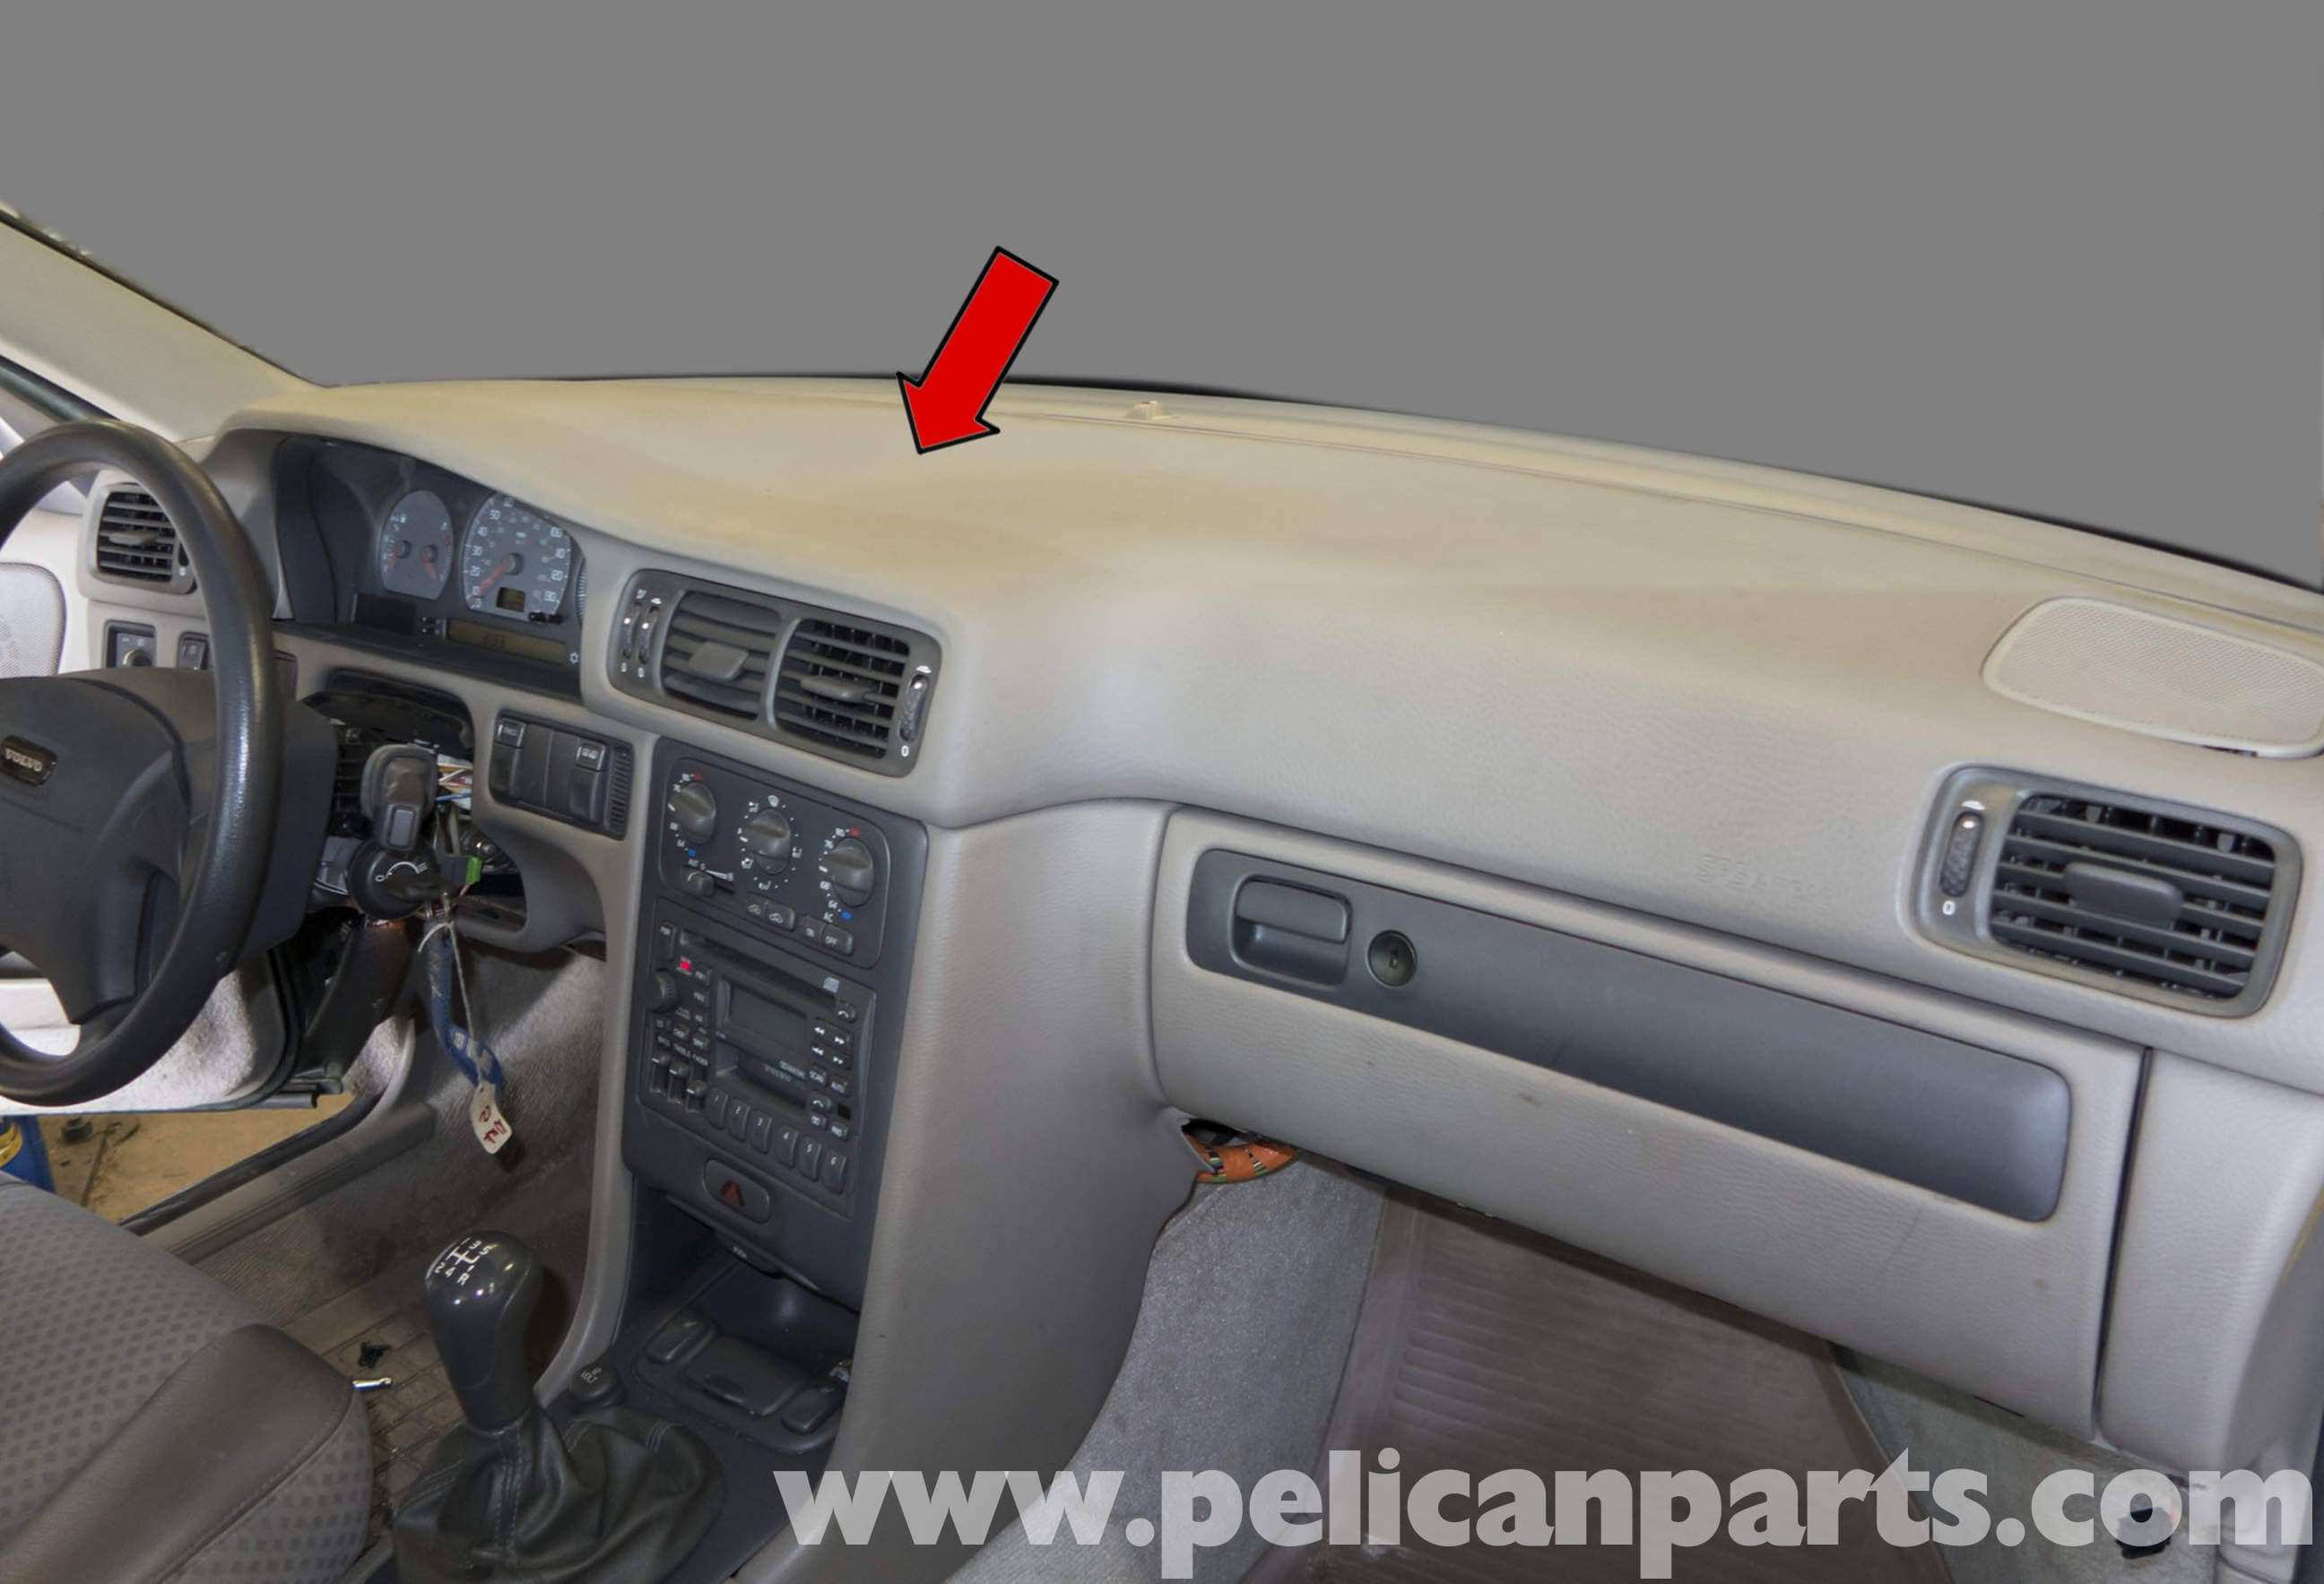 2002 Volvo C70 Seat Wiring Diagram Library Stereo V70 Upper Dashboard Panel Replacement 1998 2007 Pelican Honda Odyssey